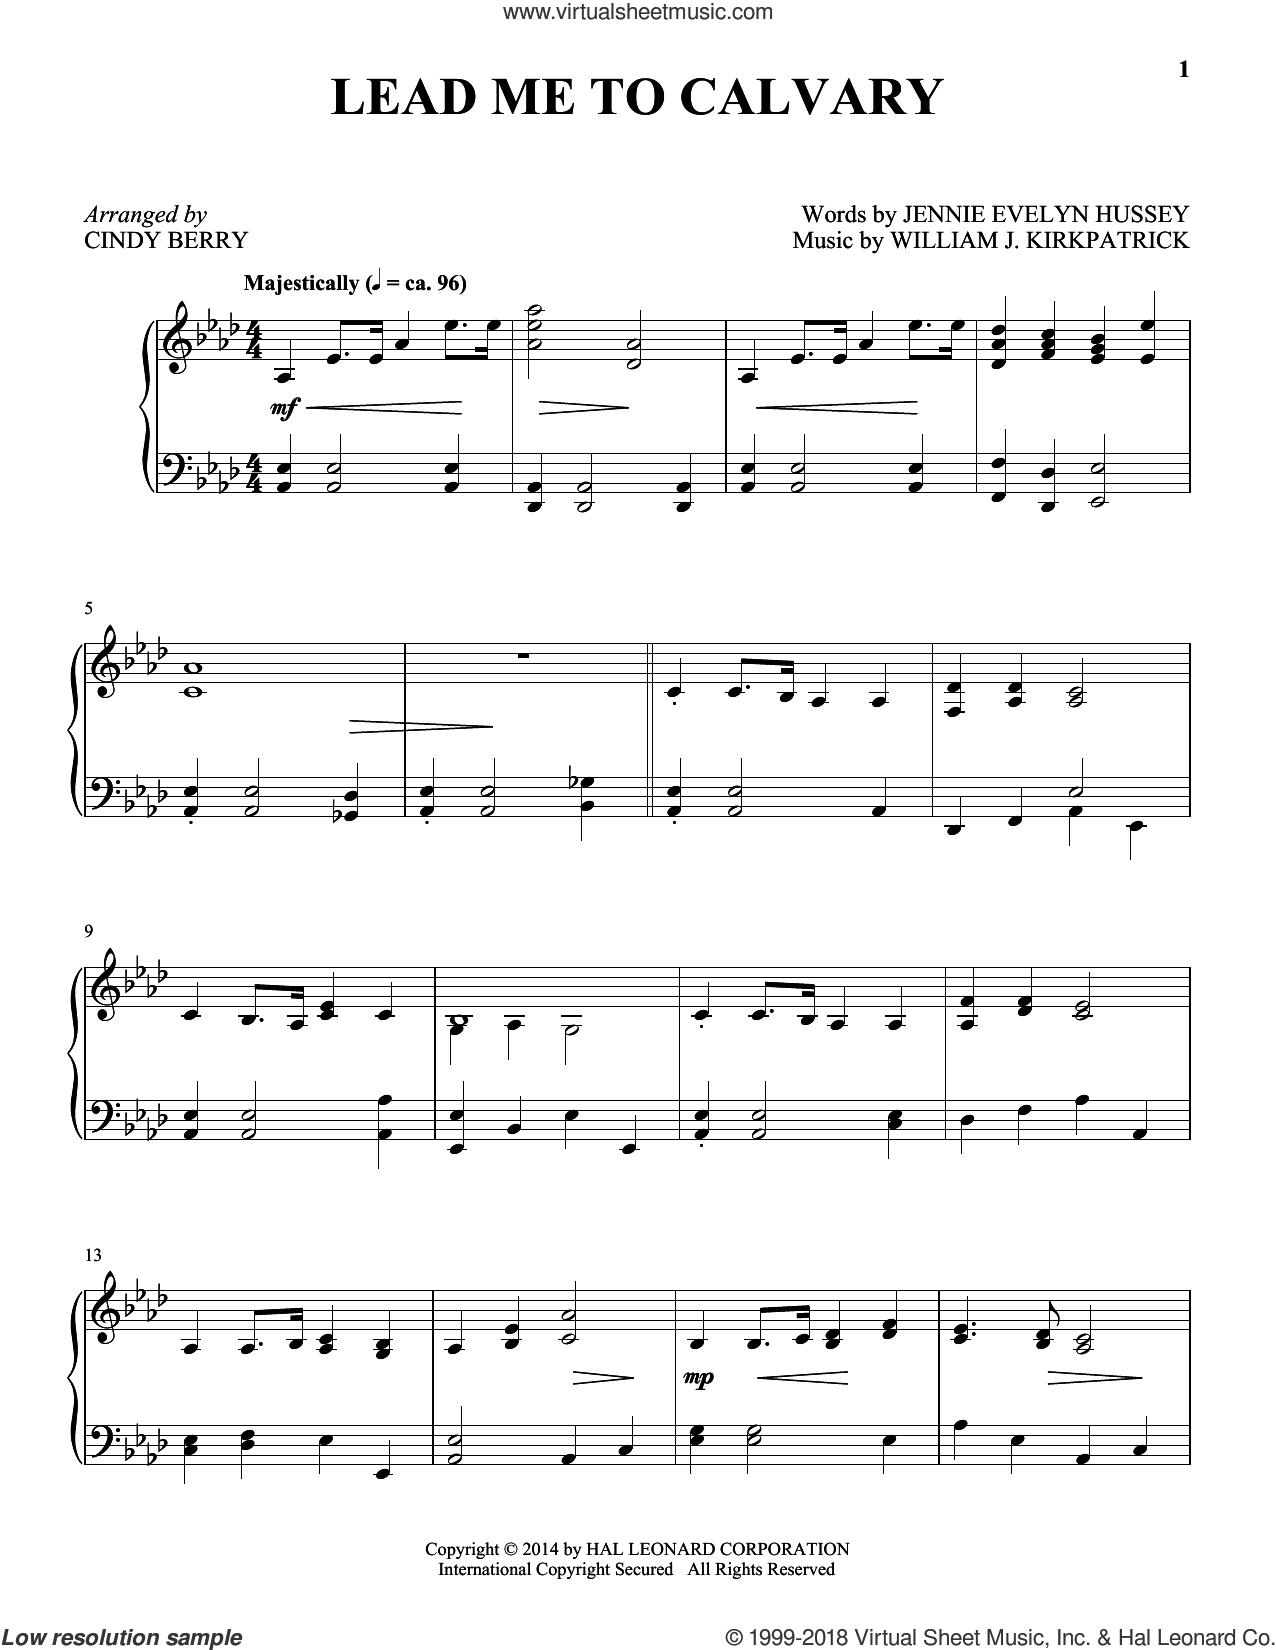 Lead Me To Calvary sheet music for piano solo by William J. Kirkpatrick, Cindy Berry and Jennie Evelyn Hussey, intermediate skill level